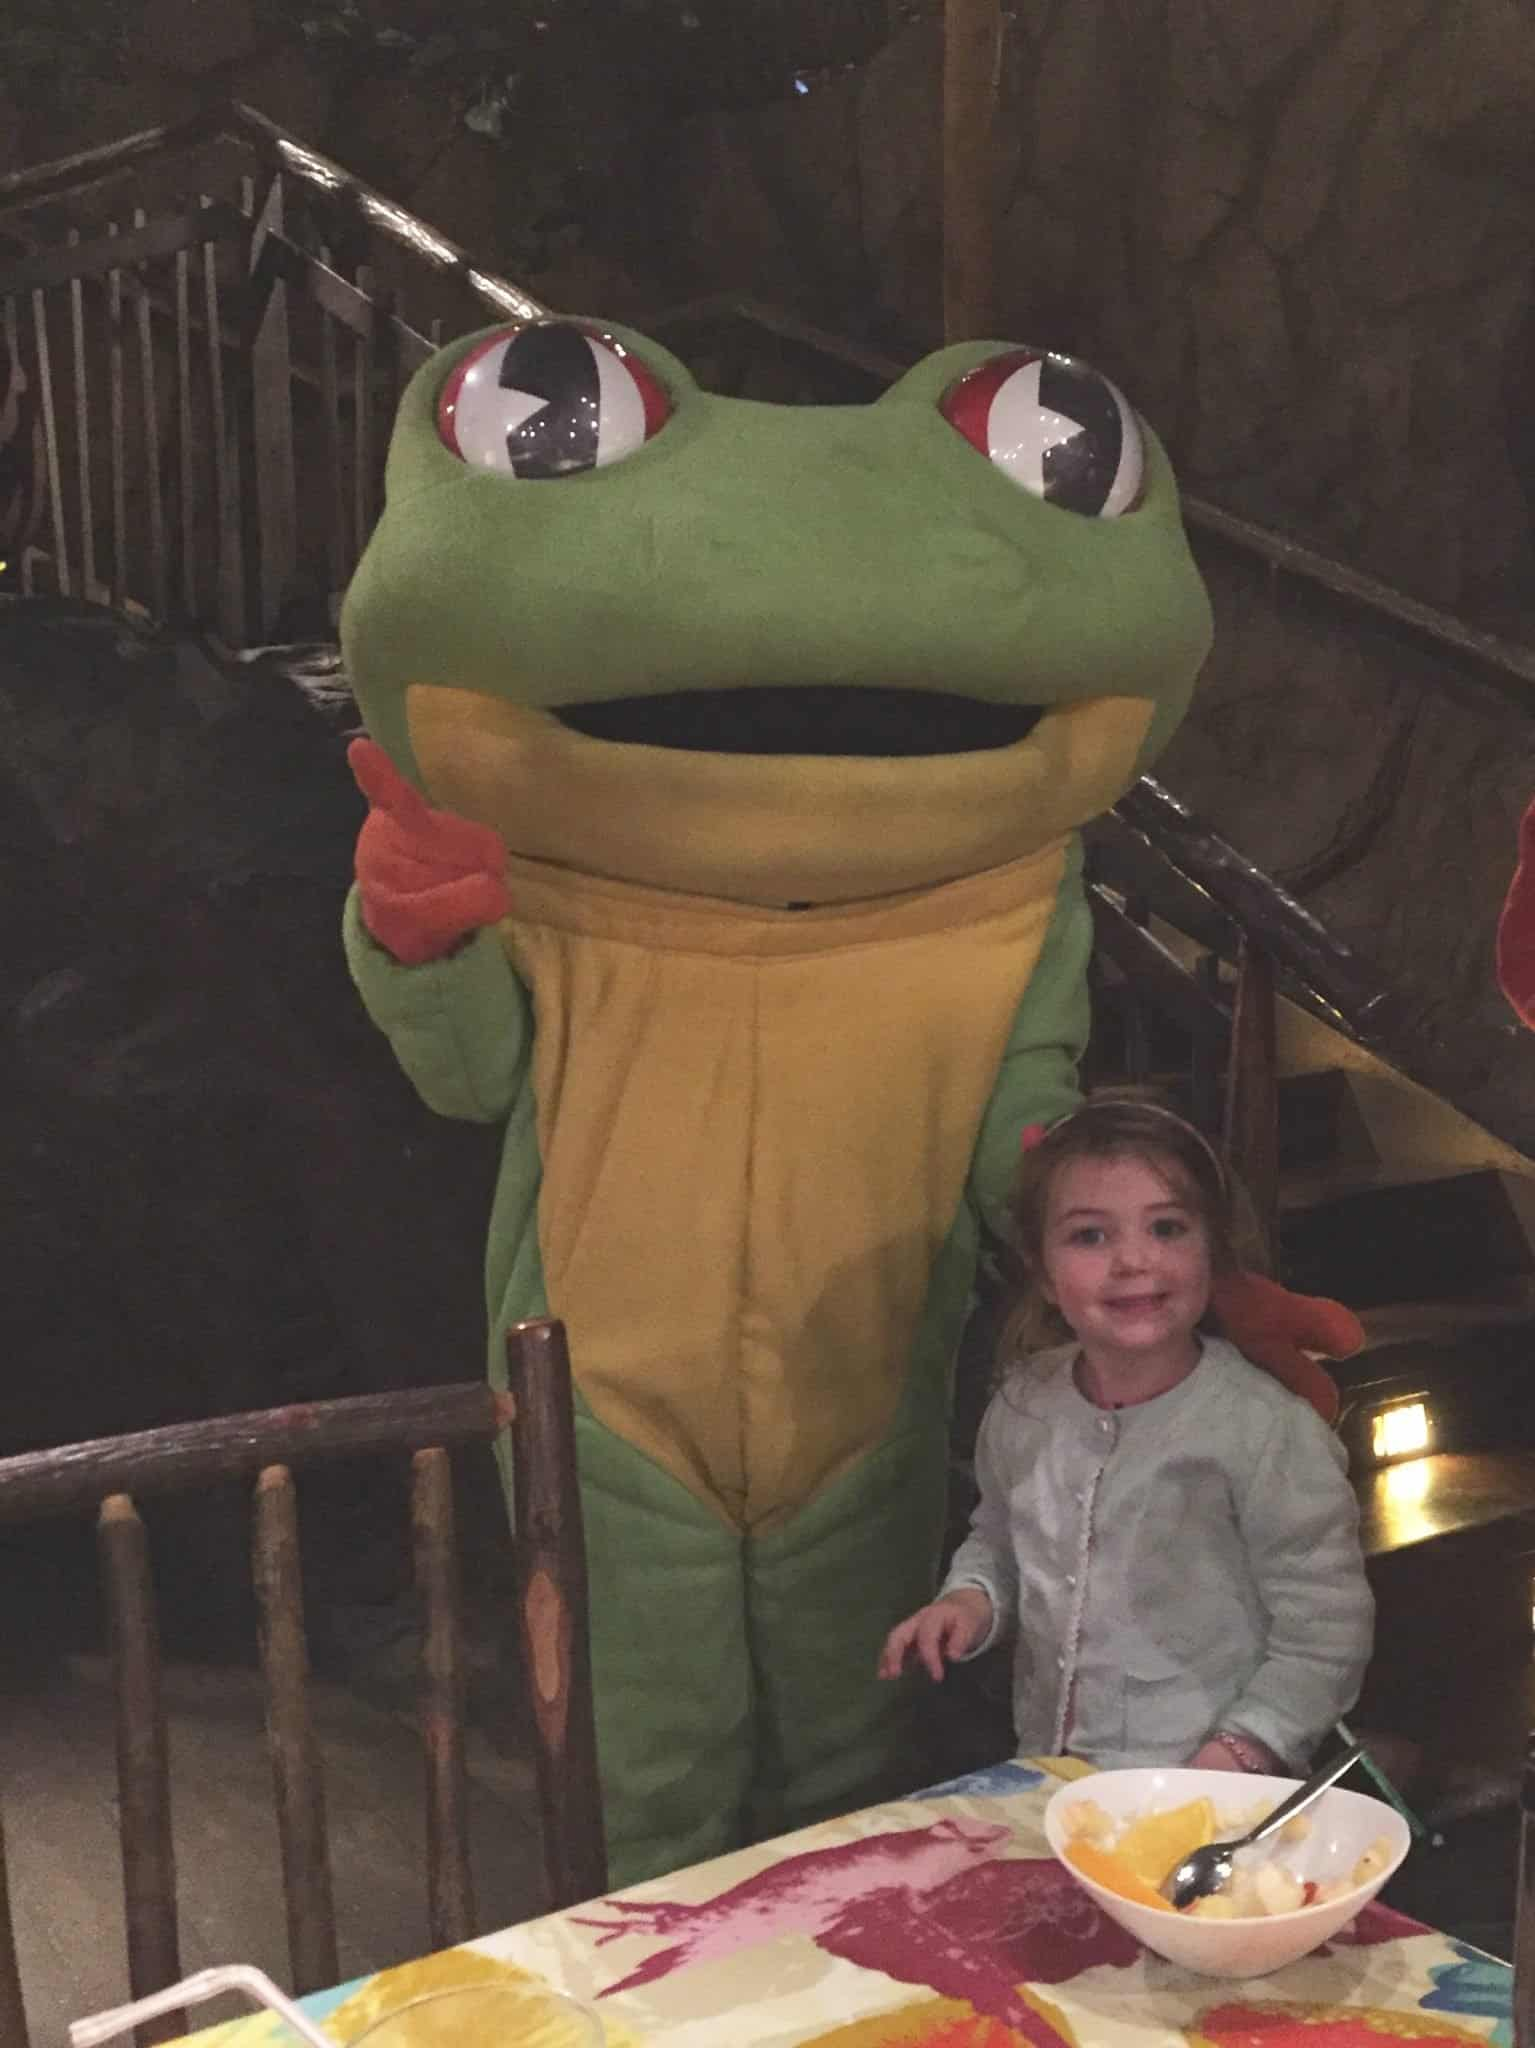 Thea at The Rainforest Cafe